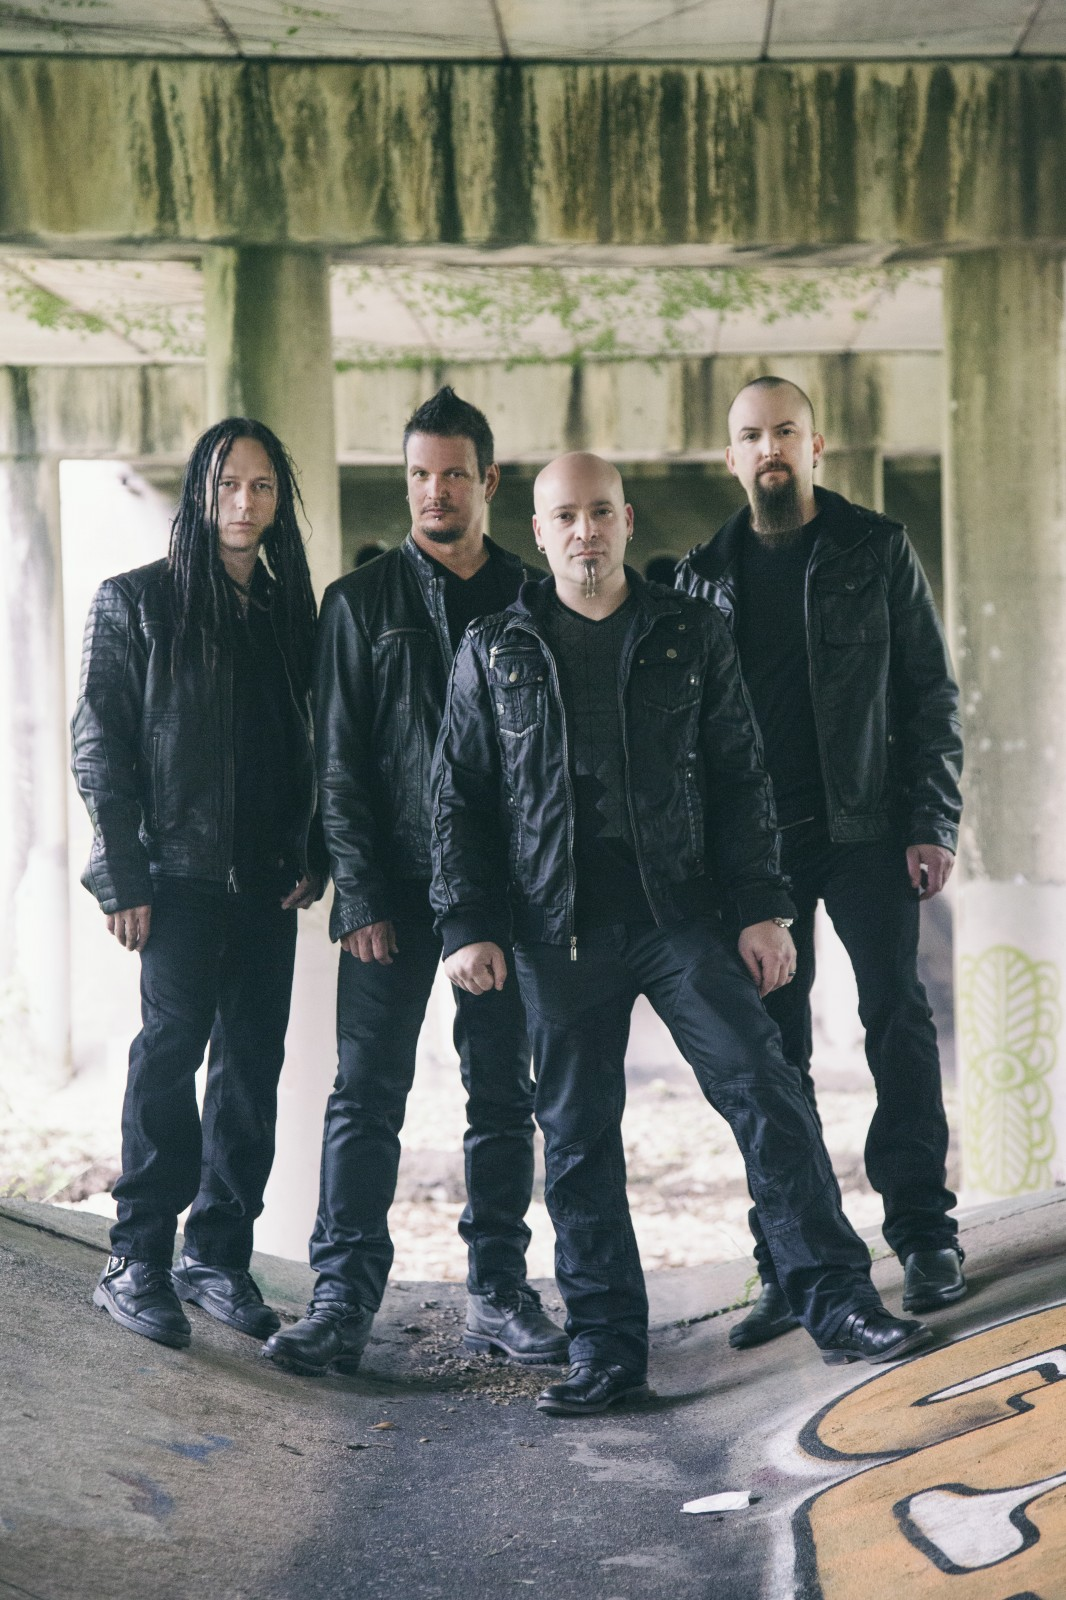 DISTURBED IS BACK!